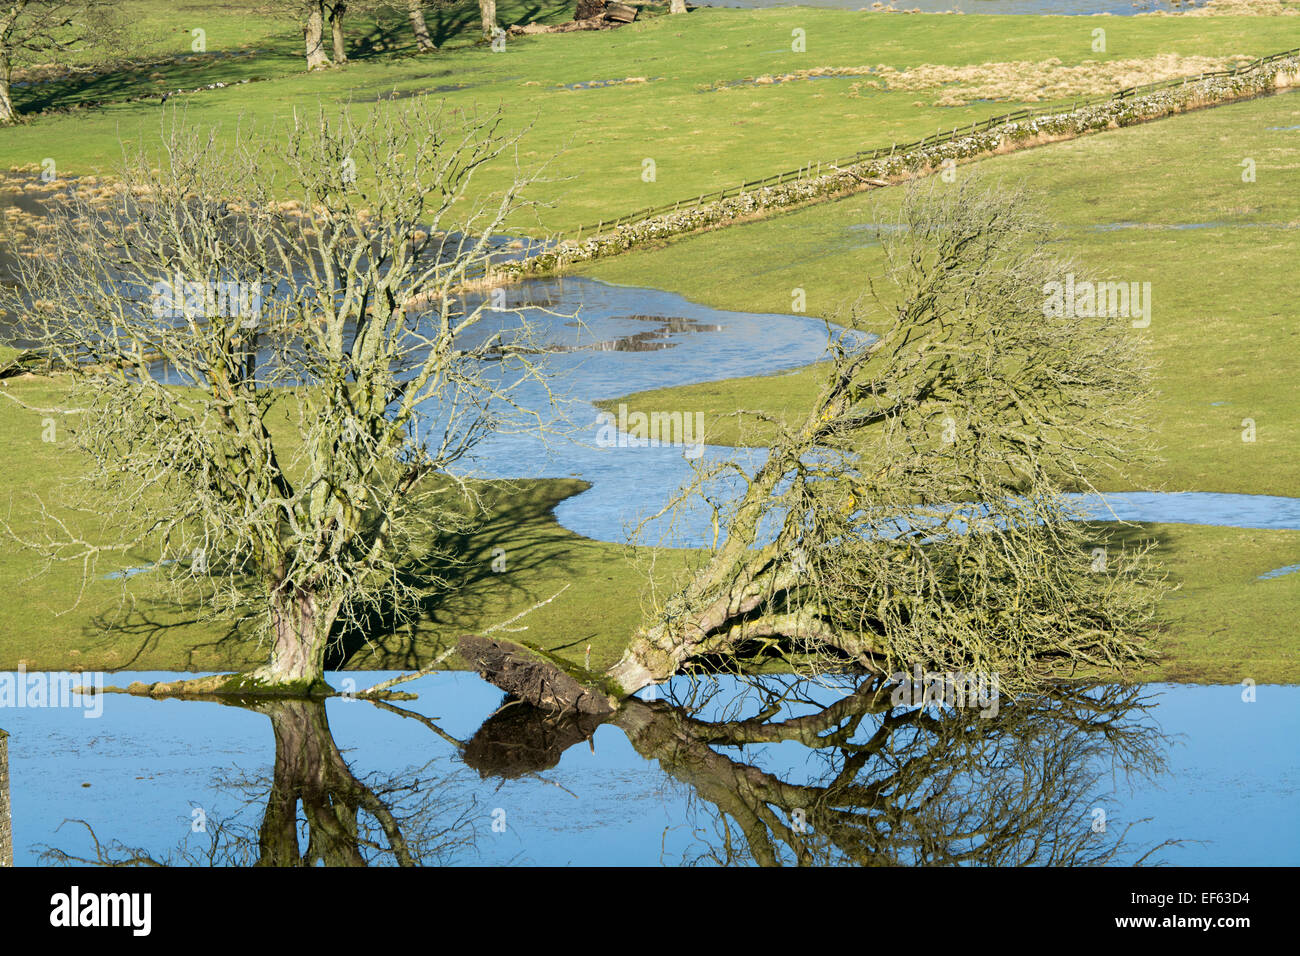 Trees in flooded fields, one fallen down. - Stock Image